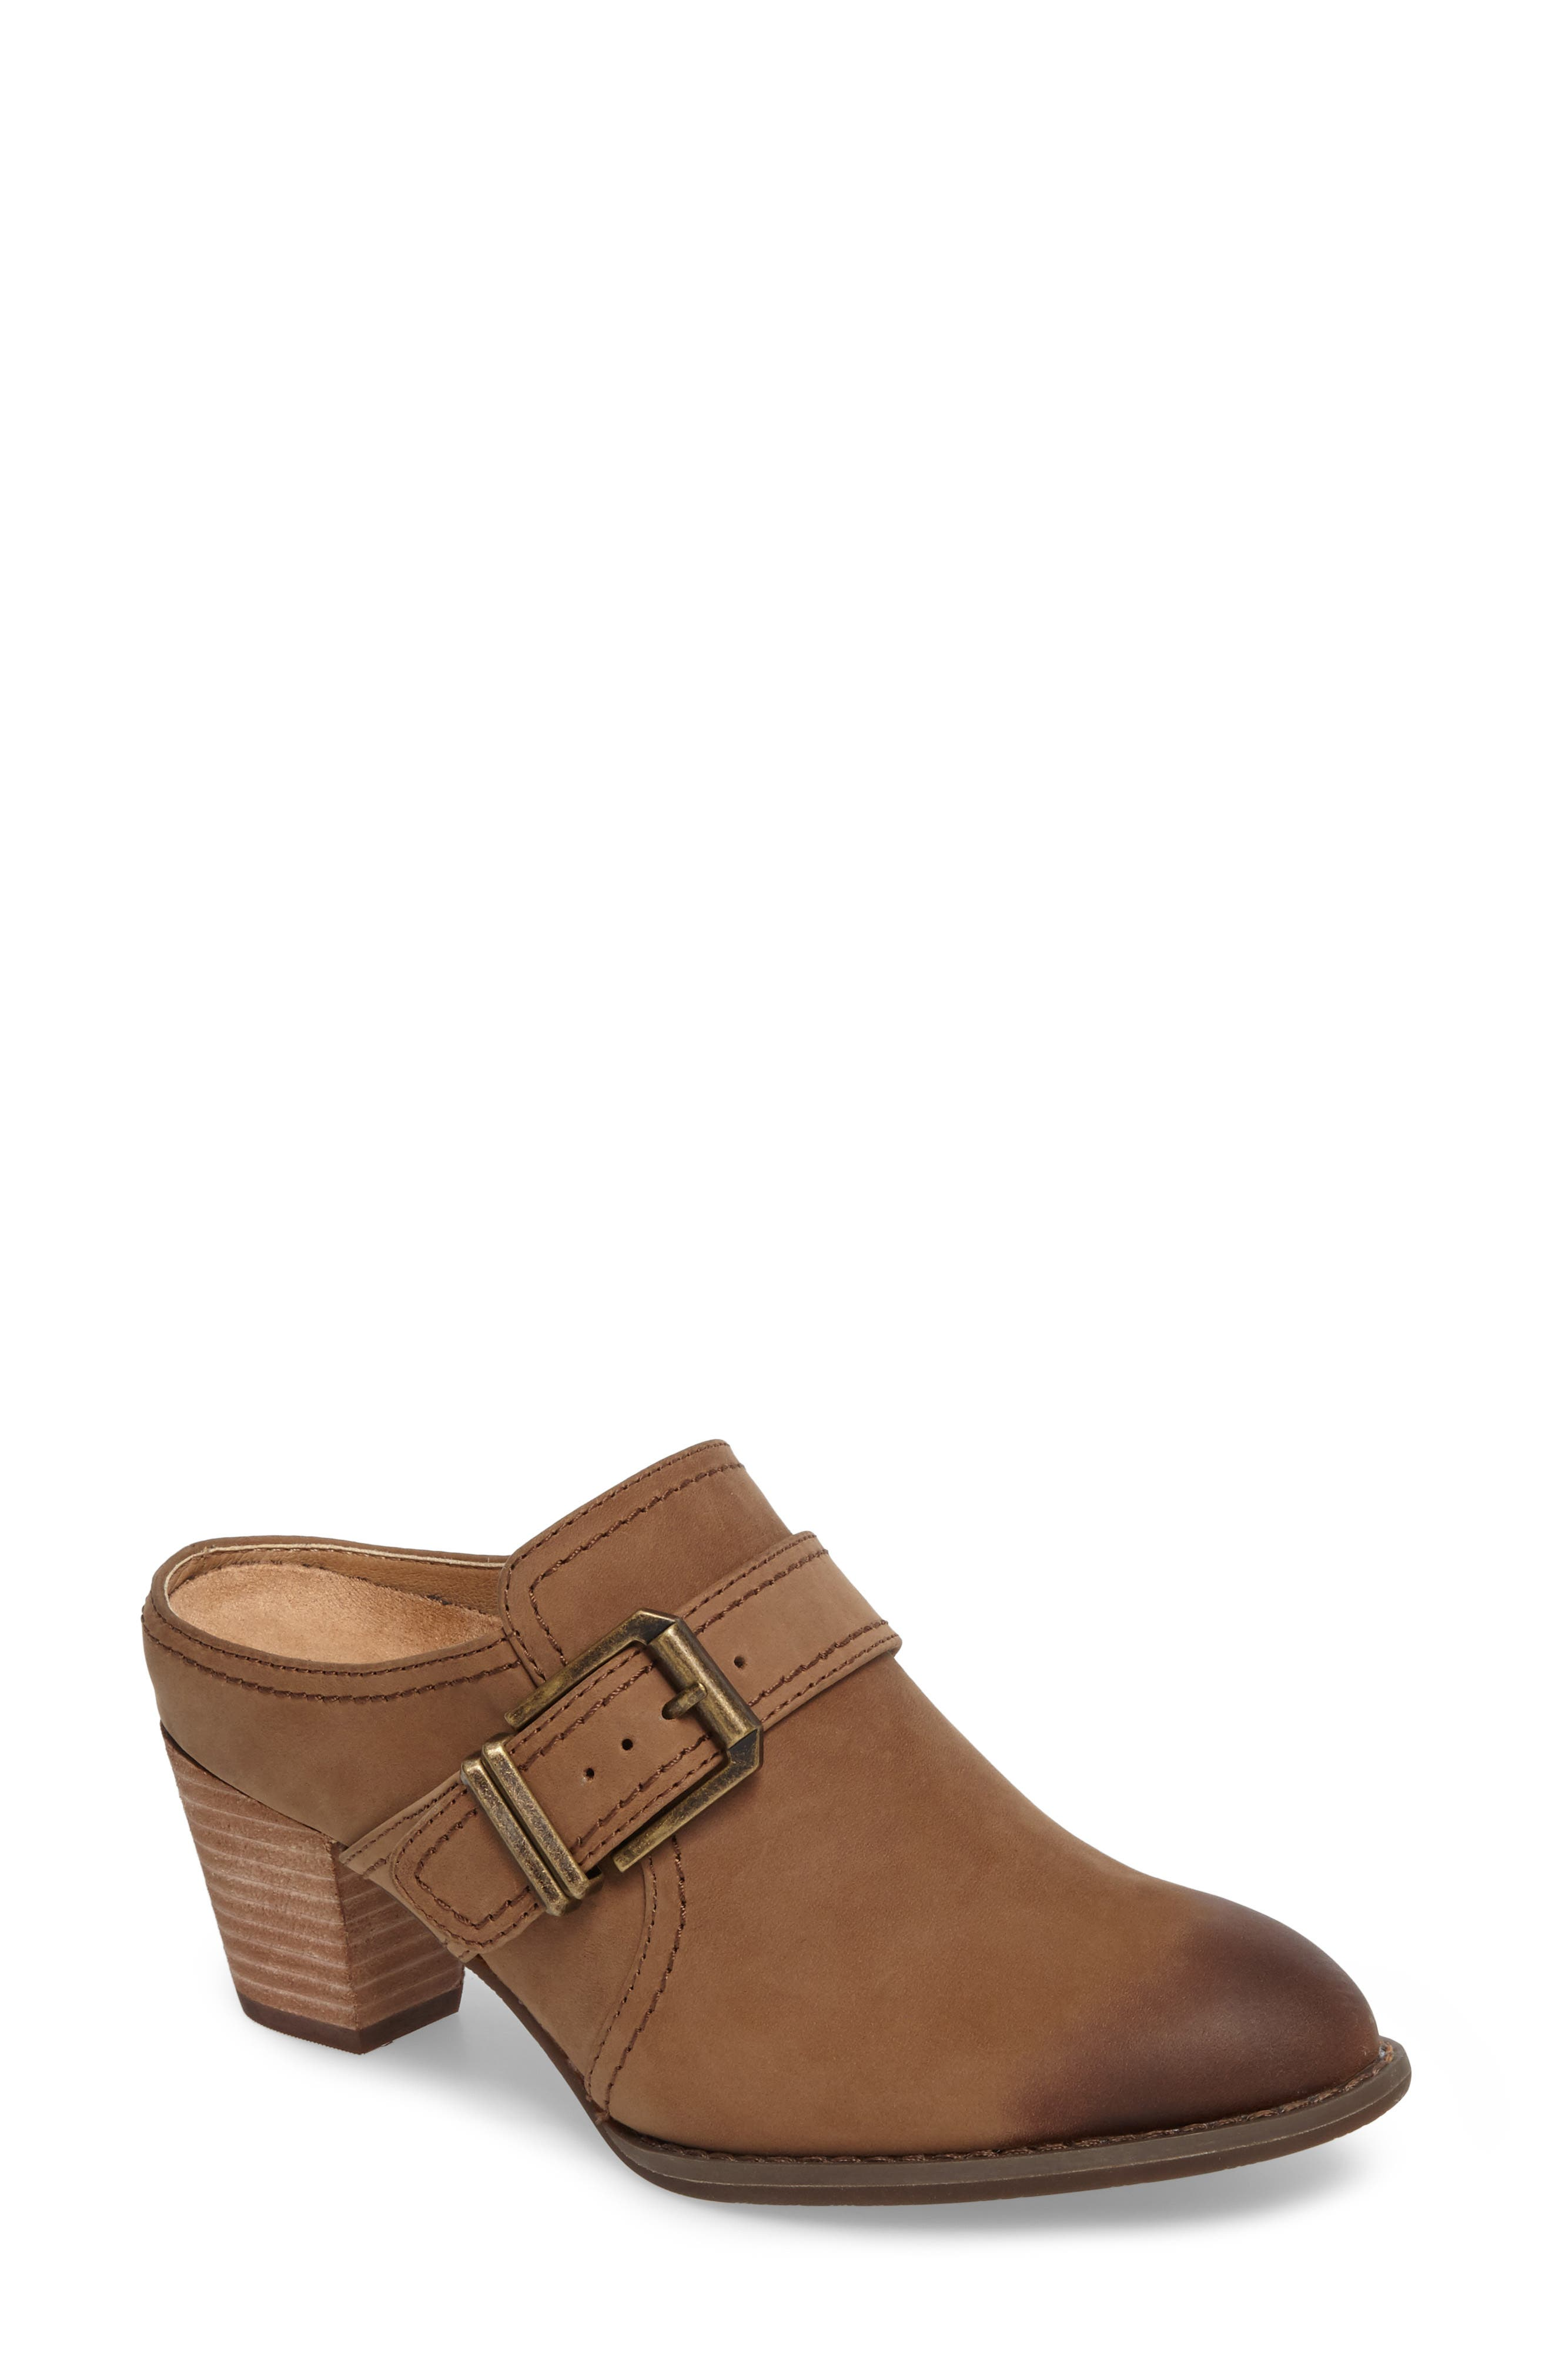 Cheyenne Mule,                             Main thumbnail 1, color,                             Brown Leather